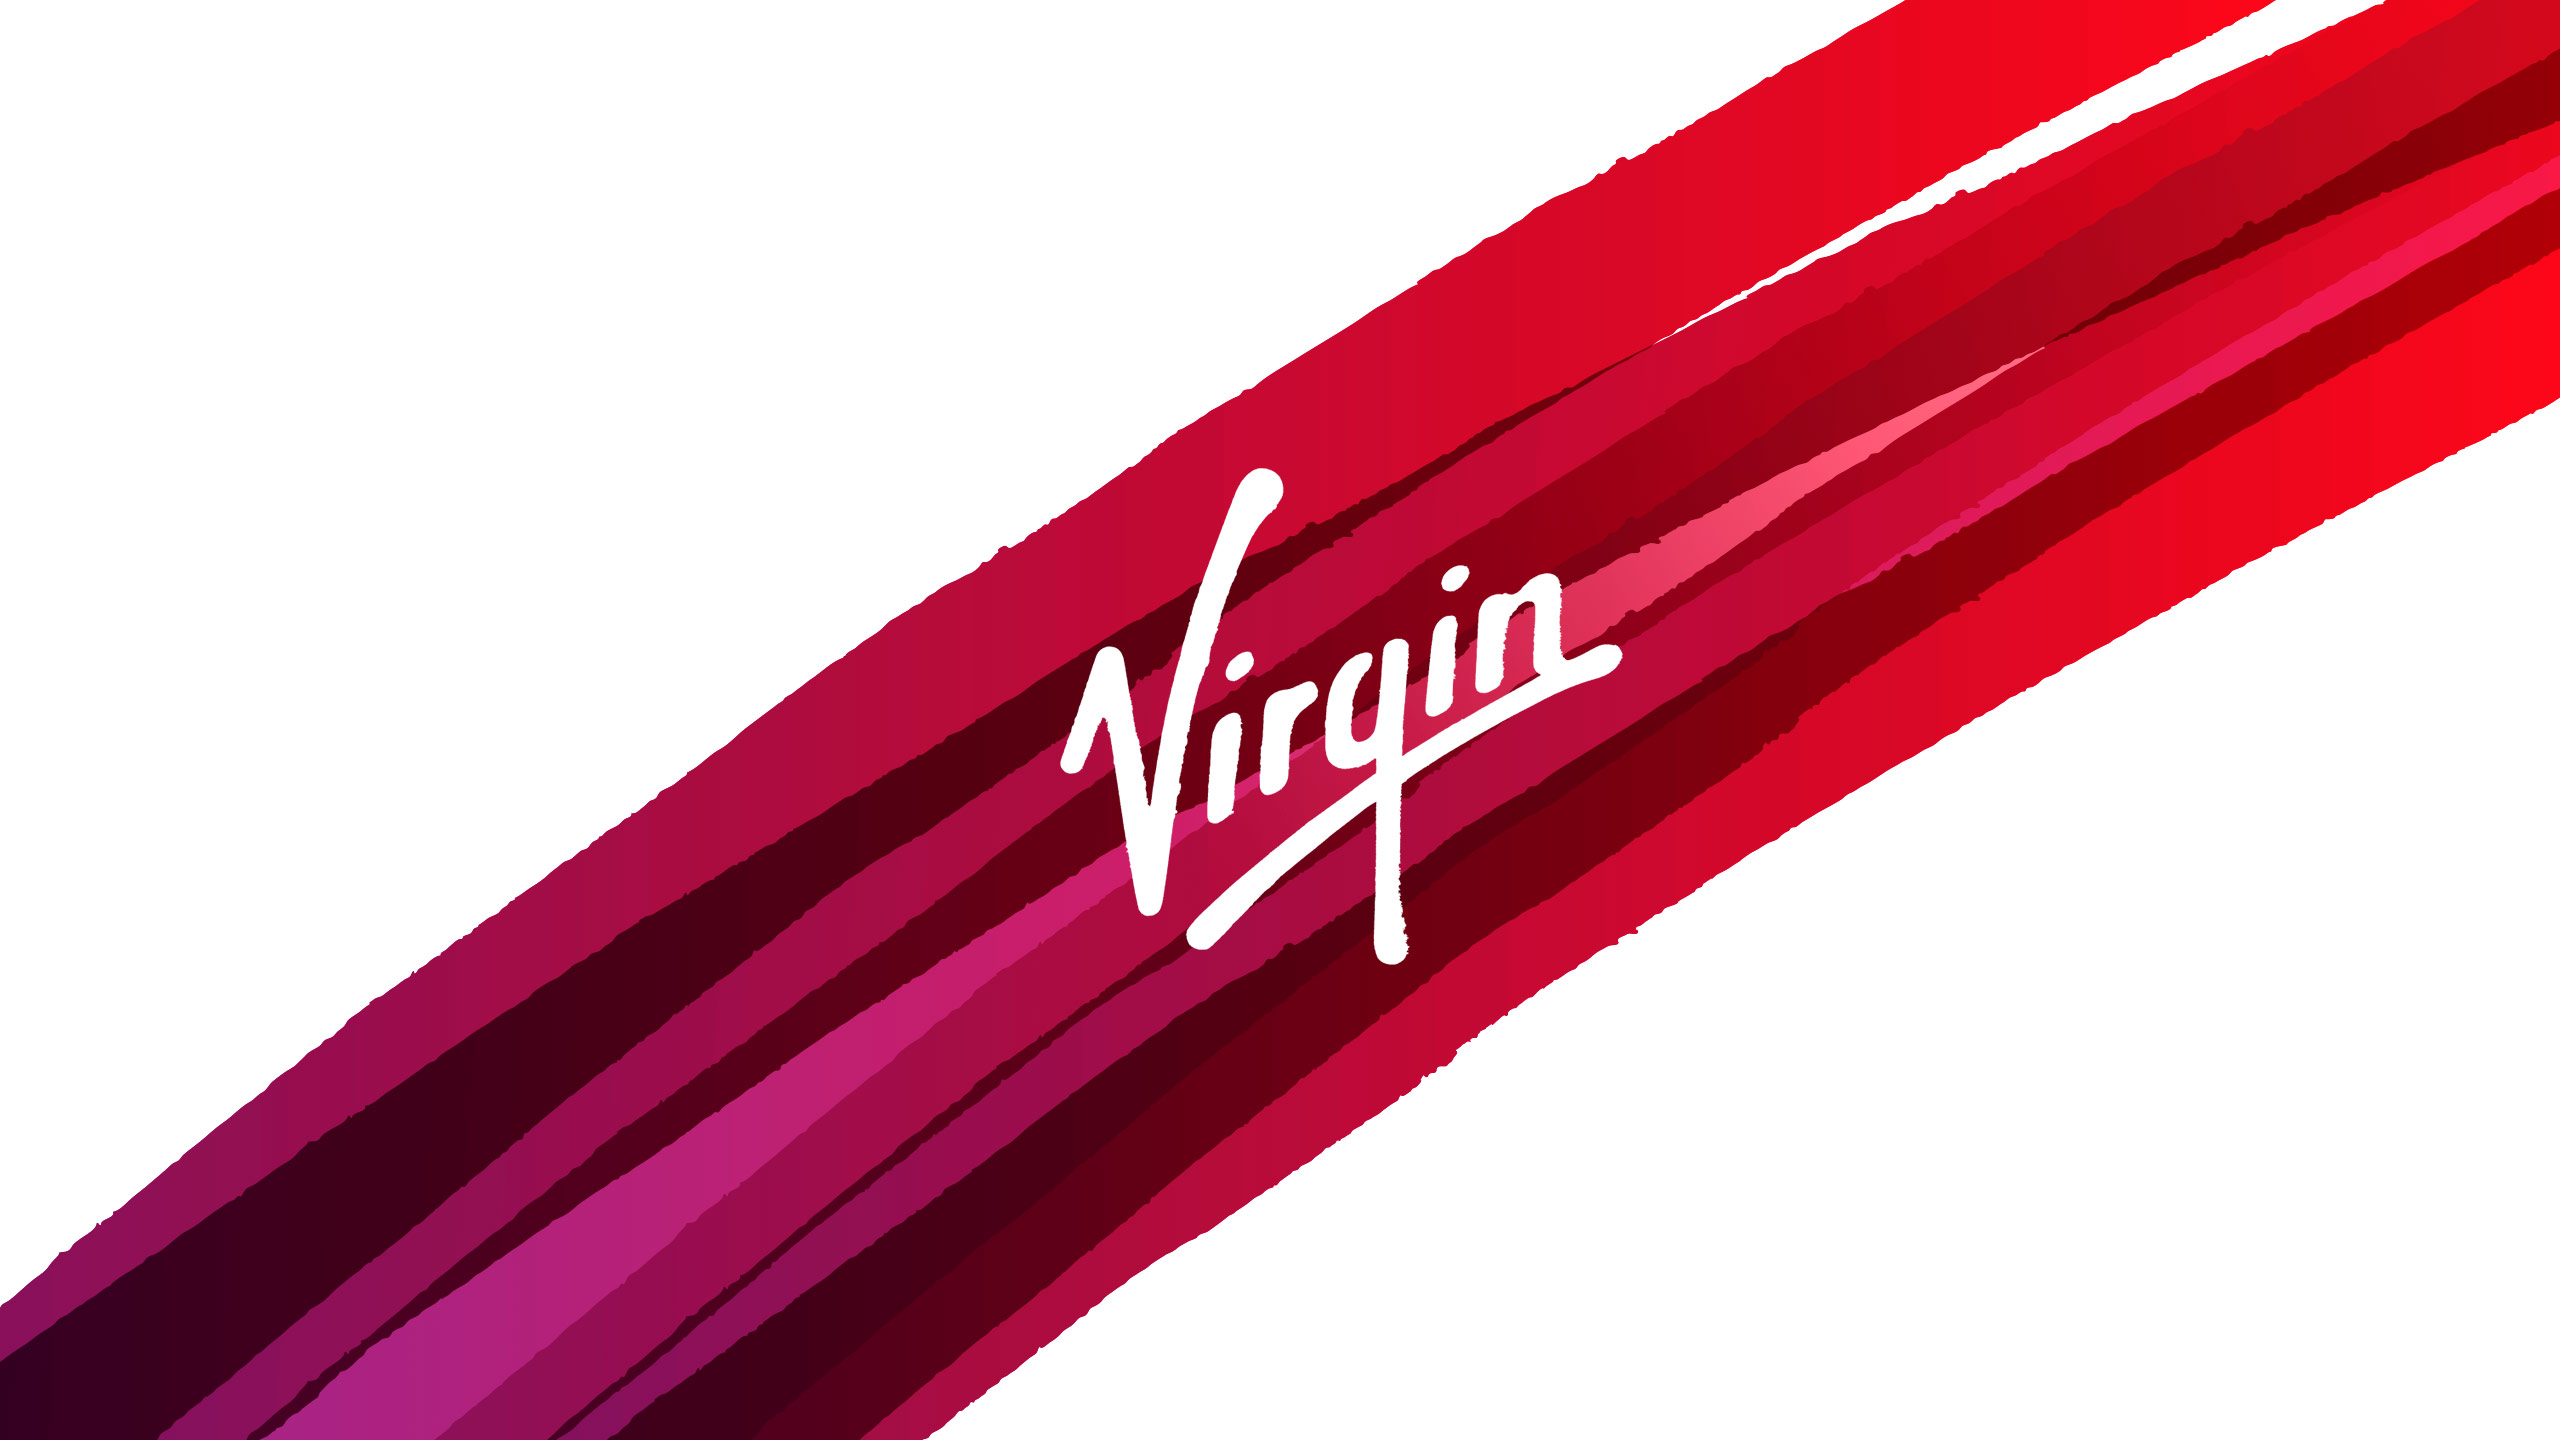 How to set a downloaded image as a wallpaper on Virgin Mobile